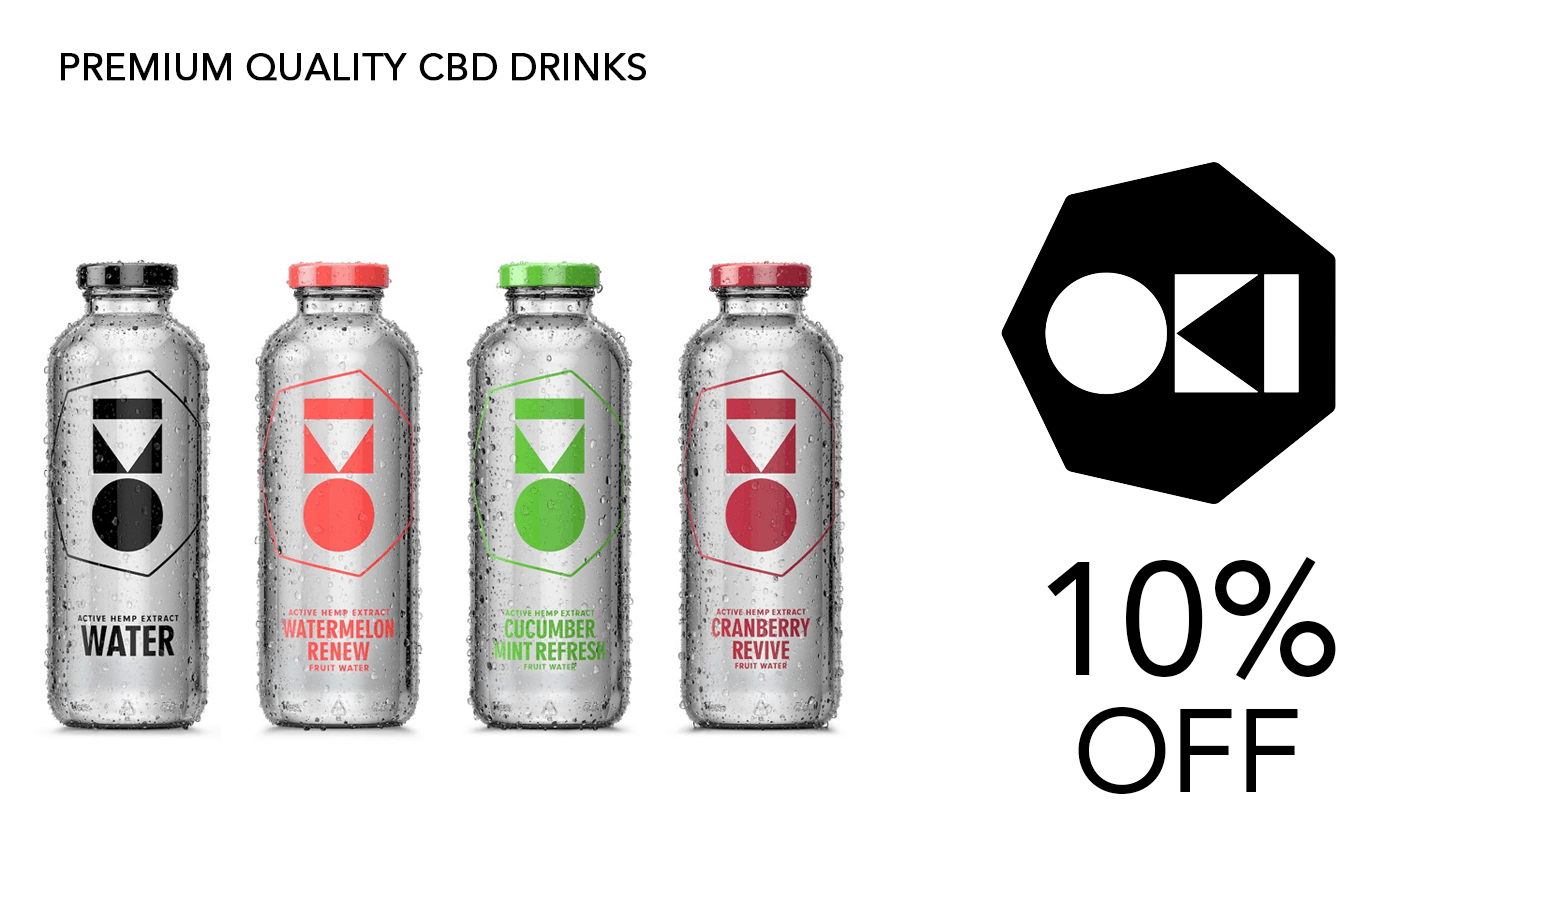 Feel OKI CBD Coupon Code Website